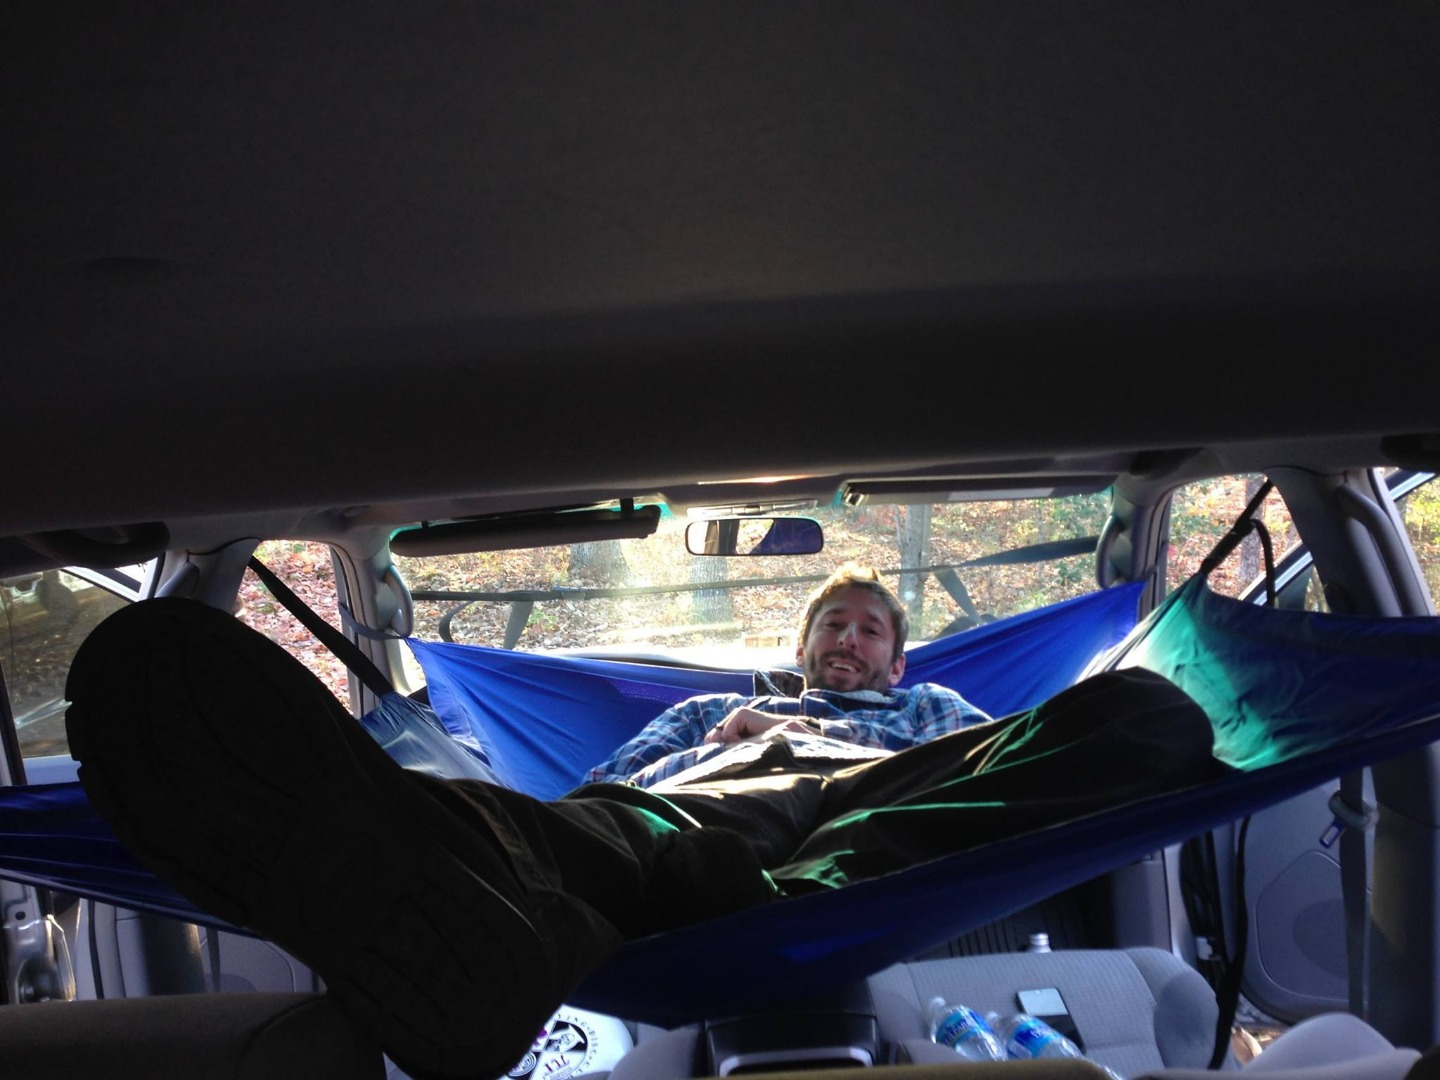 Car Hammock turns your automobile into a suspended camping lounge